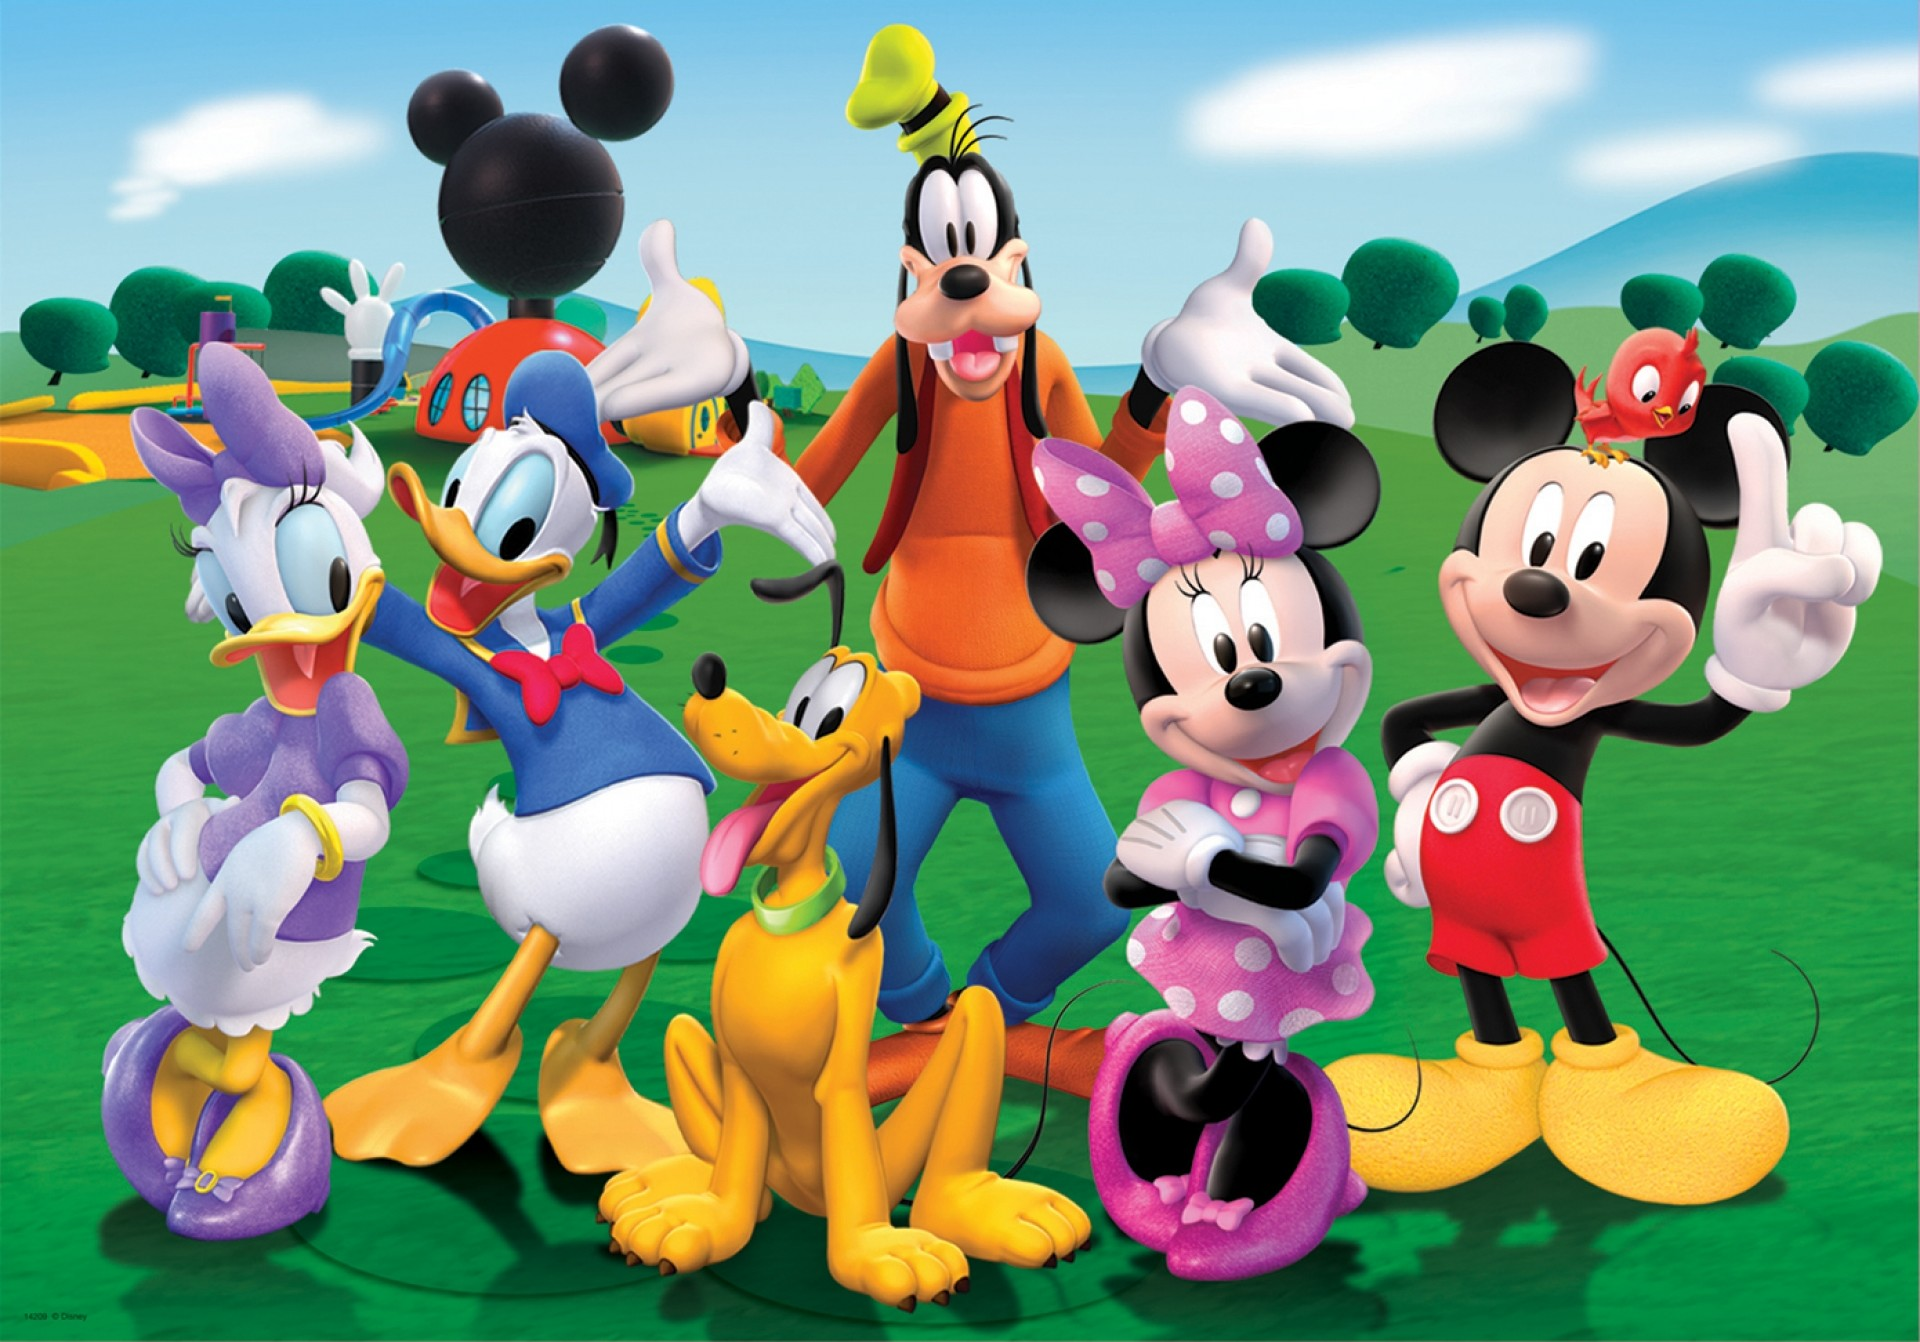 Mickey Mouse Club House images Mickey Mouse Club House Cartoon Wallpaper HD  wallpaper and background photos